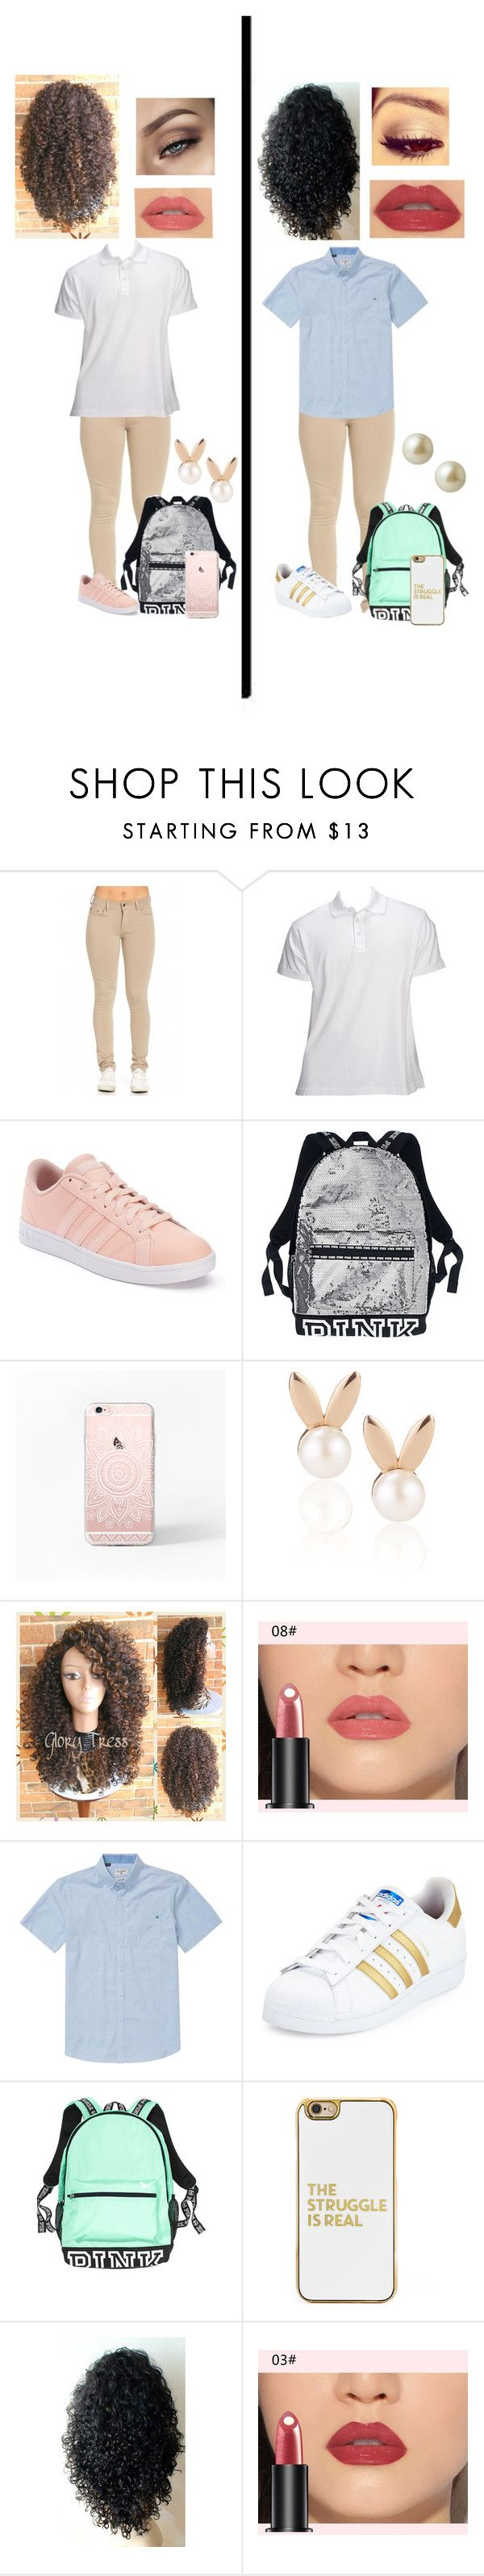 """""""Back to School (Uniform)"""" by angelforevernalways ❤ liked on Polyvore featuring 5.11 Tactical, adidas, Aamaya by priyanka, Billabong, BaubleBar and Carolee"""